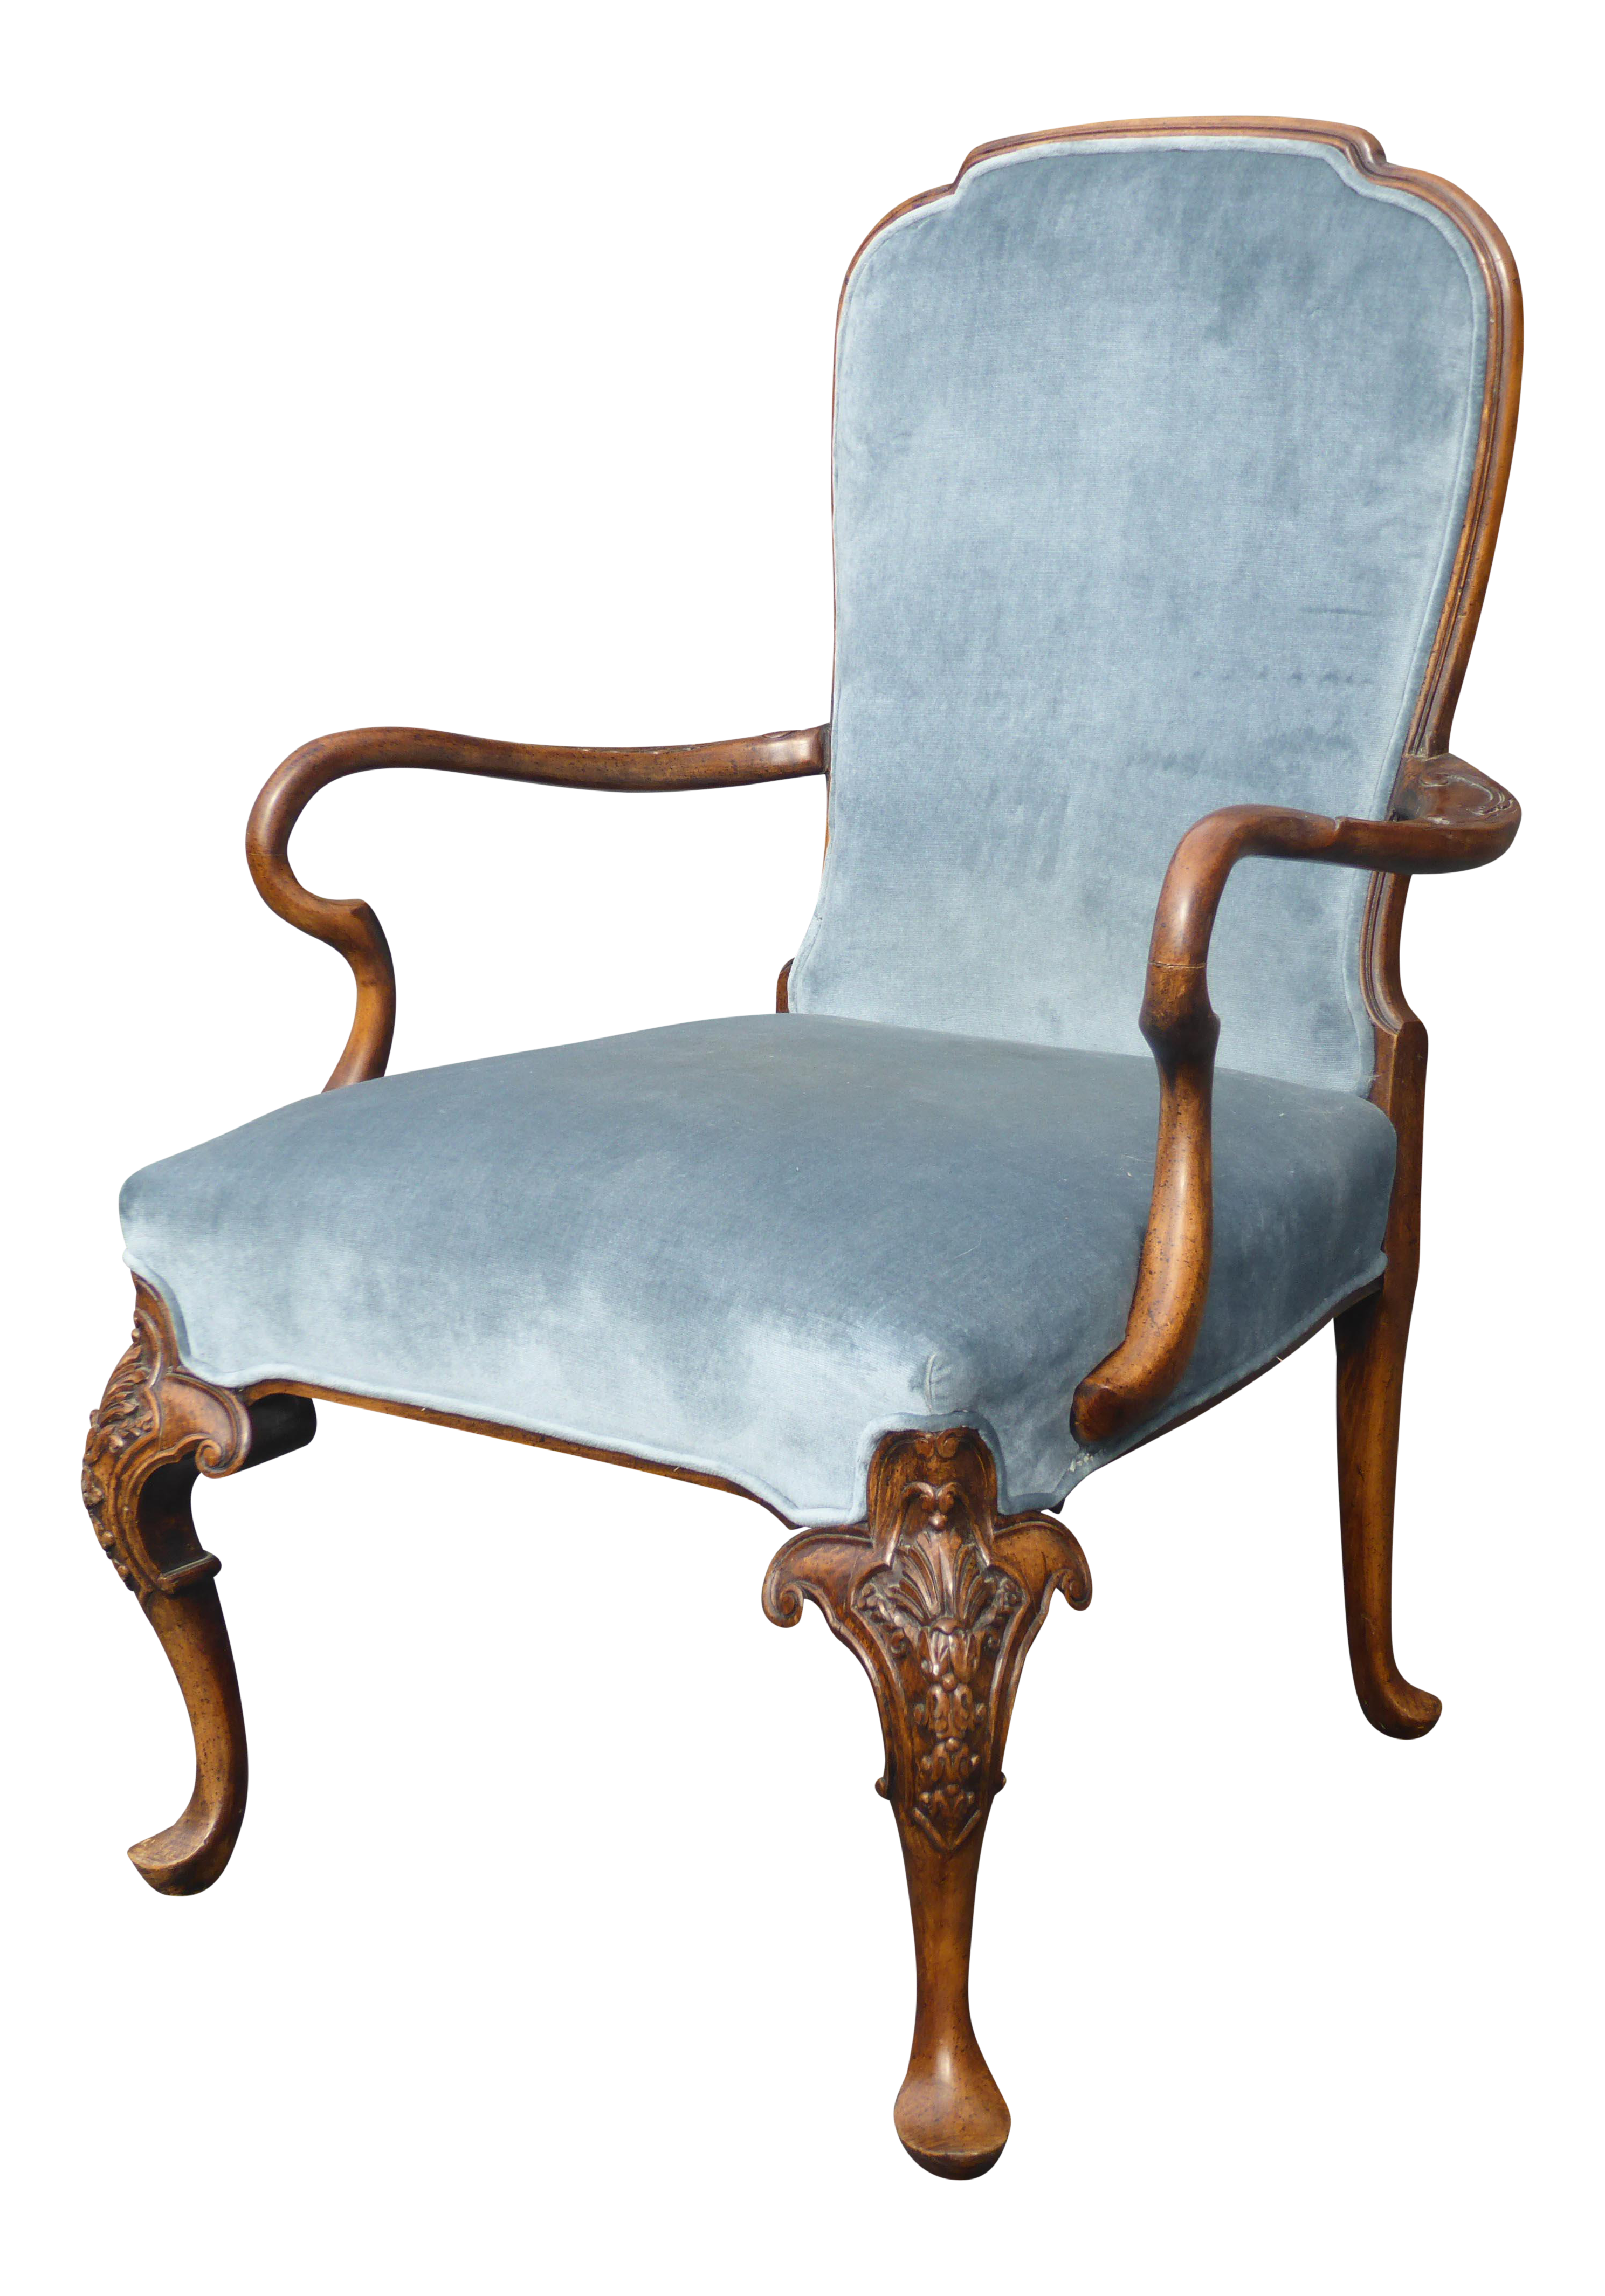 French Provincial Chair >> Vintage French Provincial Blue Fauteuil Chair On Chairish Com